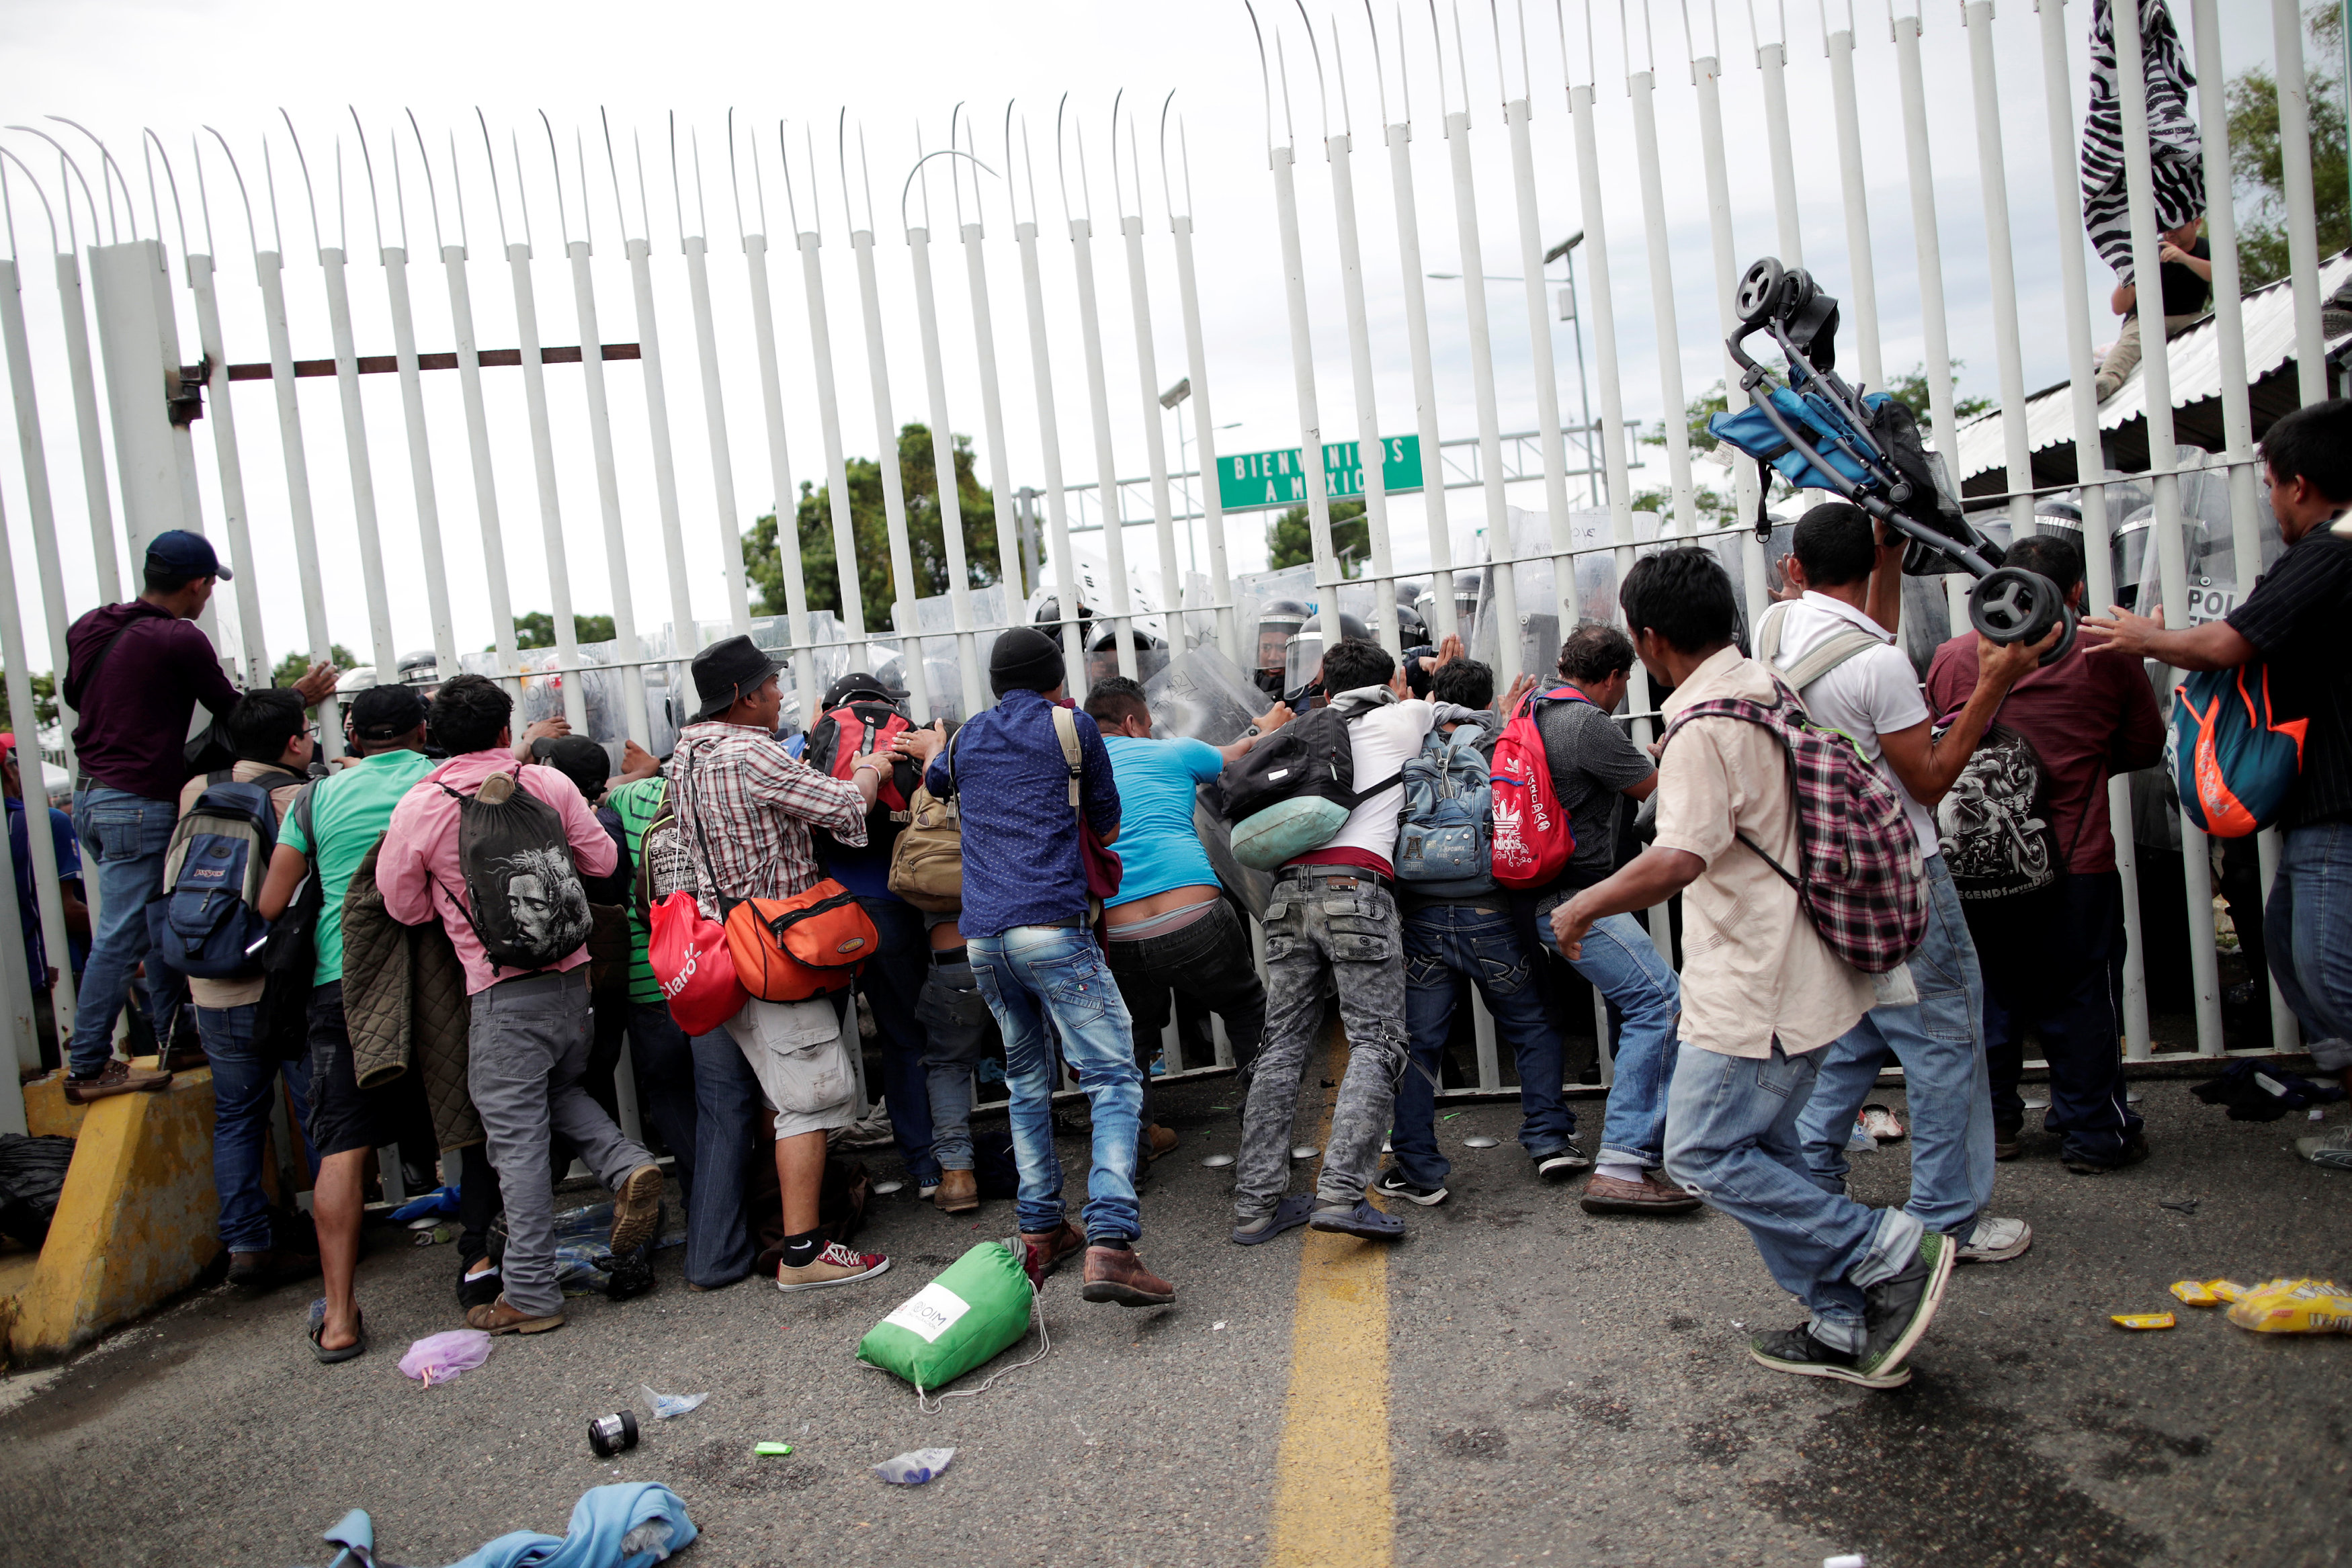 Honduran migrants, part of a caravan trying to reach the U.S., push a fence to make their way into Mexico as federal riot policemen guard the border checkpoint, in Ciudad Hidalgo